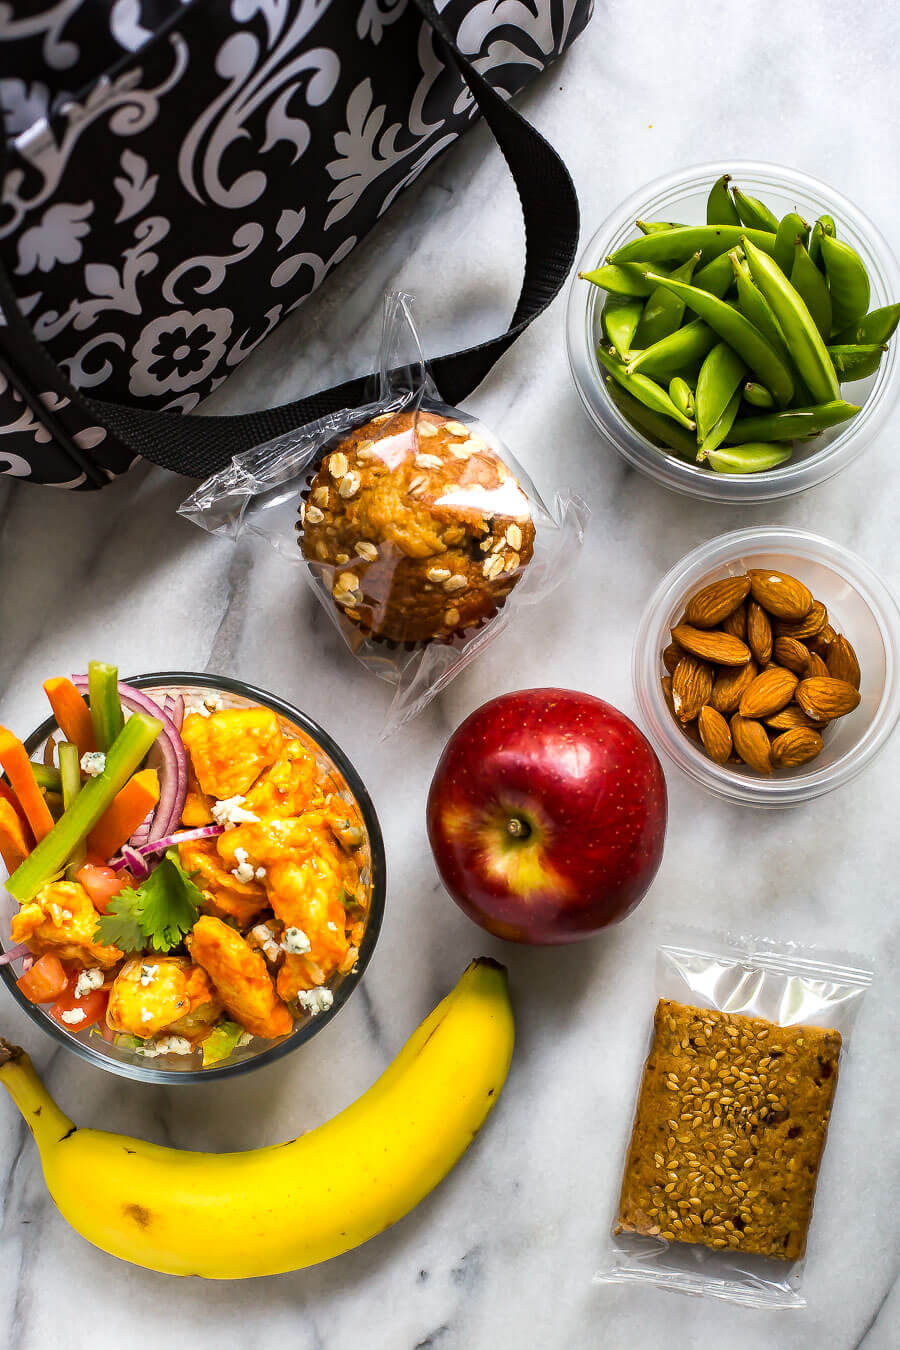 Healthy Lunches For The Week  Healthy Packed Snack & Lunch Ideas for the Week The